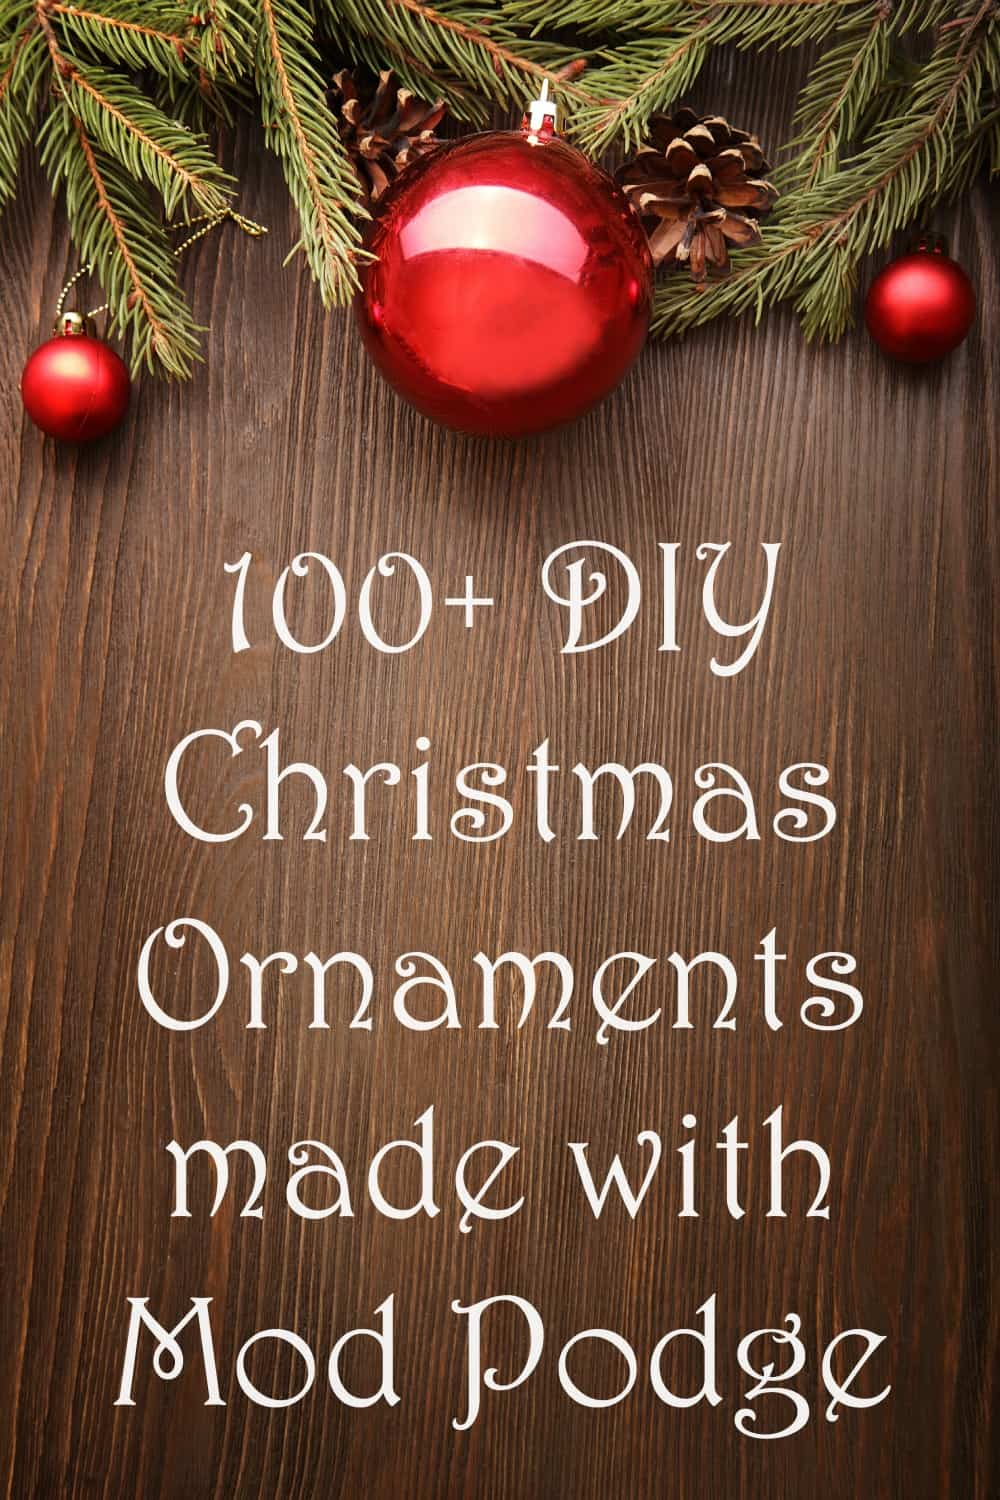 DIY Christmas ornaments made with Mod Podge - Mod Podge Rocks